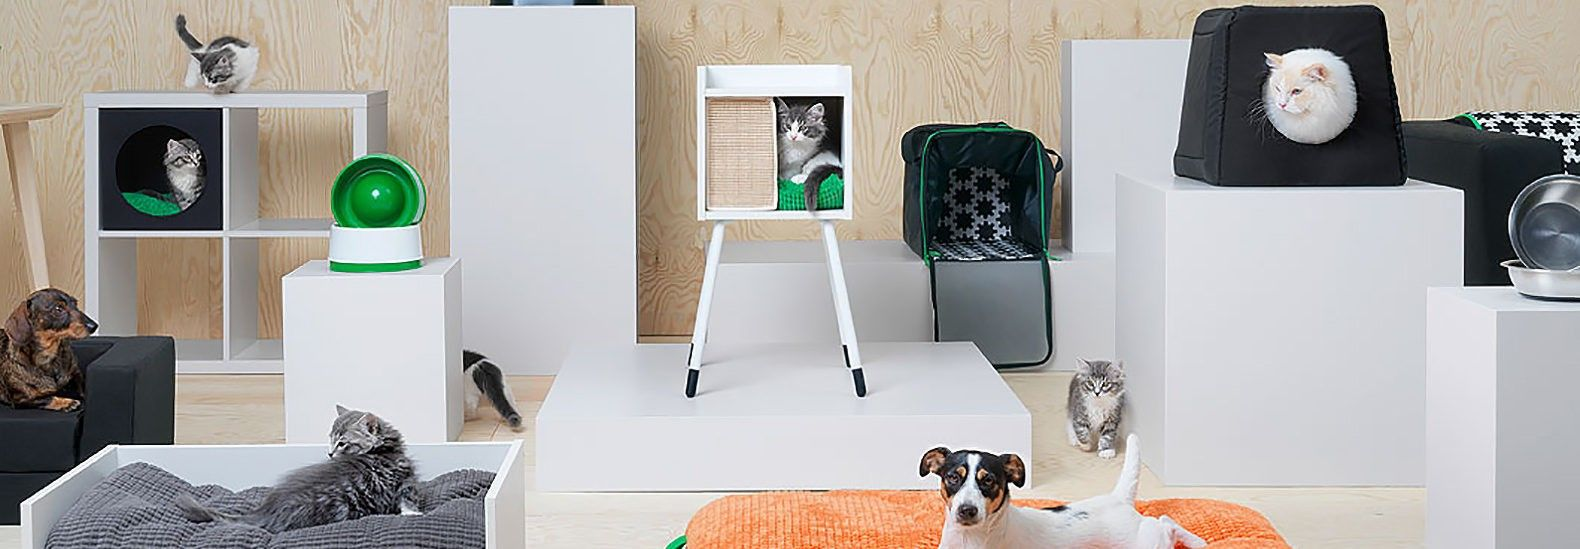 IKEA is offering furniture for pets and it's adorable